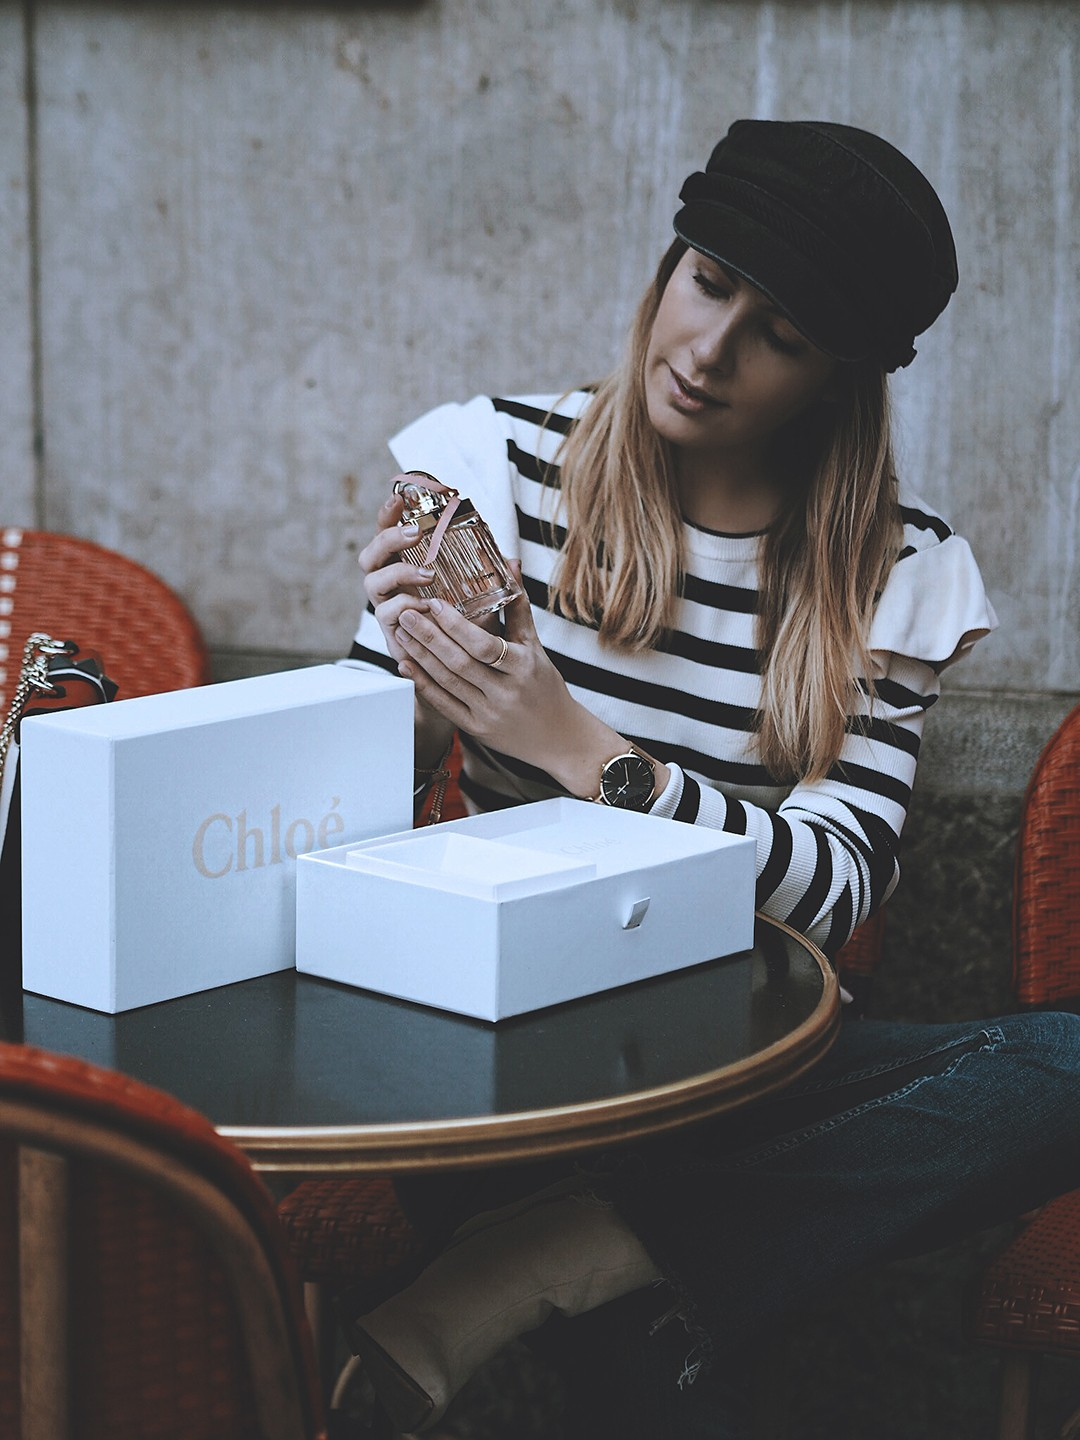 chloe-girls-chloe-love-story-fashion-blog